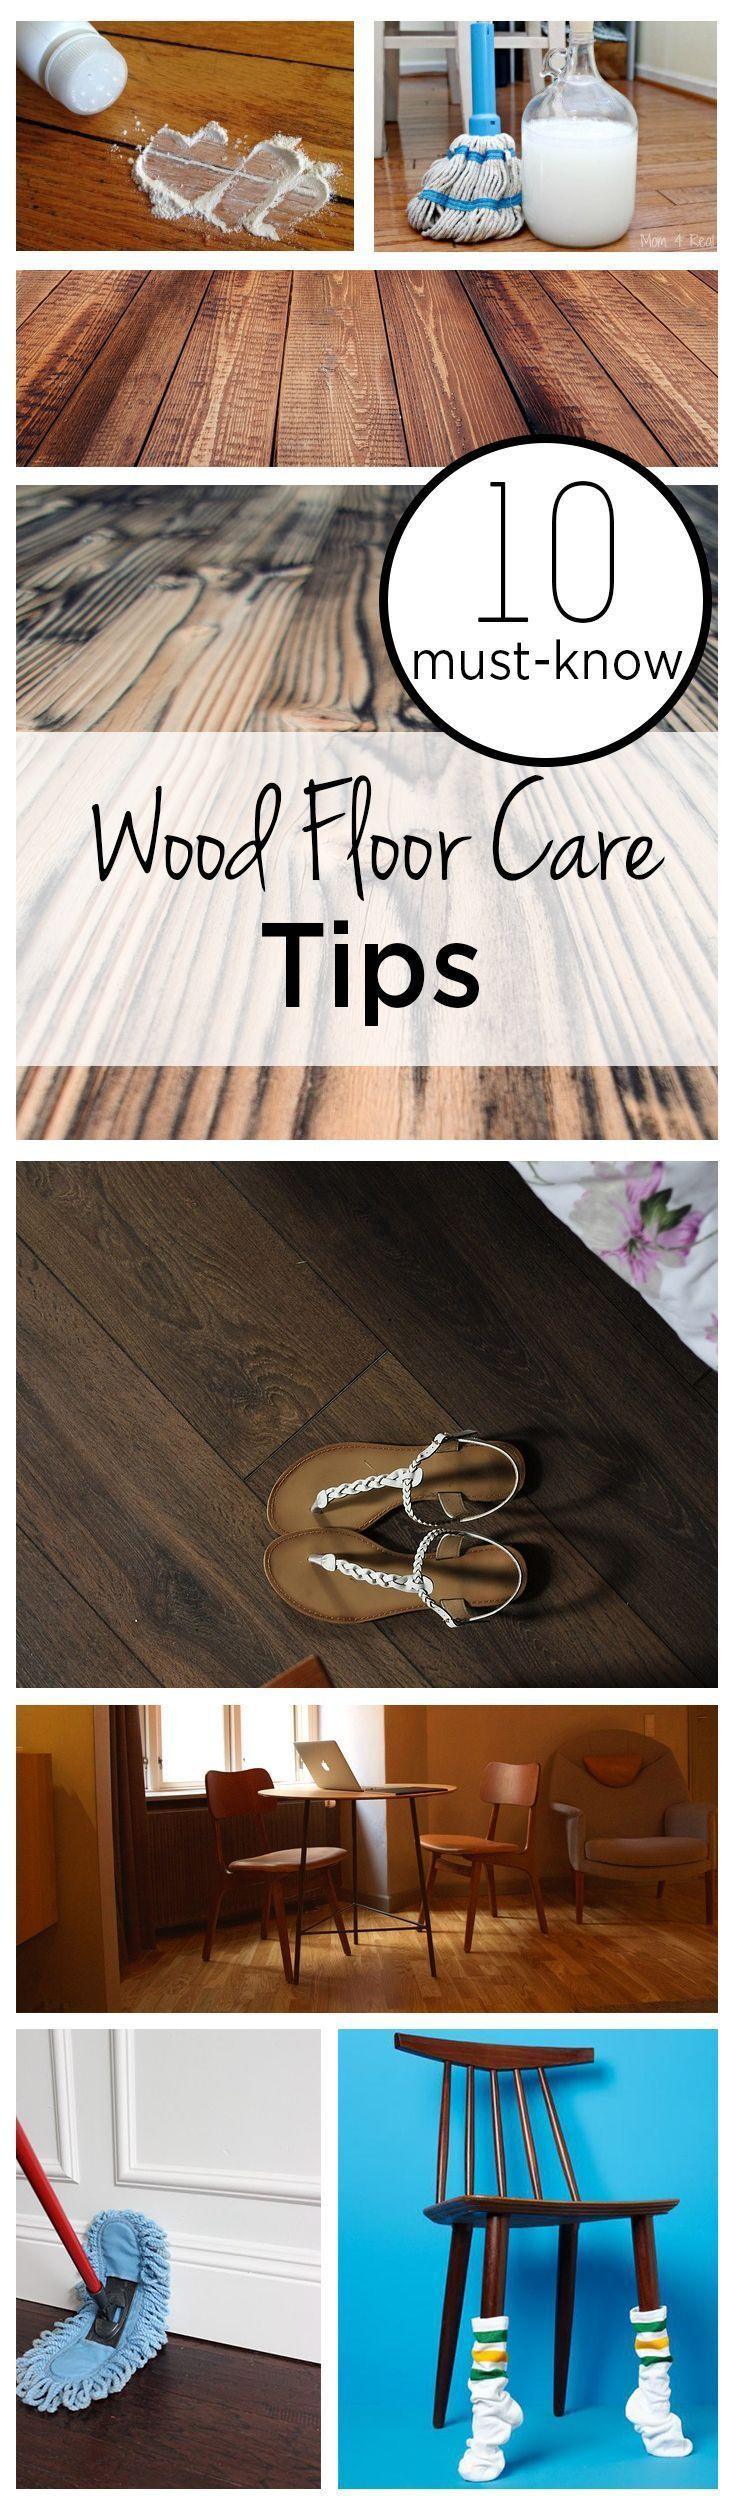 Tt Hardwood Floor Of 1559 Best Diy Images On Pinterest Boots Ceilings and Cleaning Hacks In Wood Floor Care Tips Wood Floor Care Hacks How to Care for A Wood